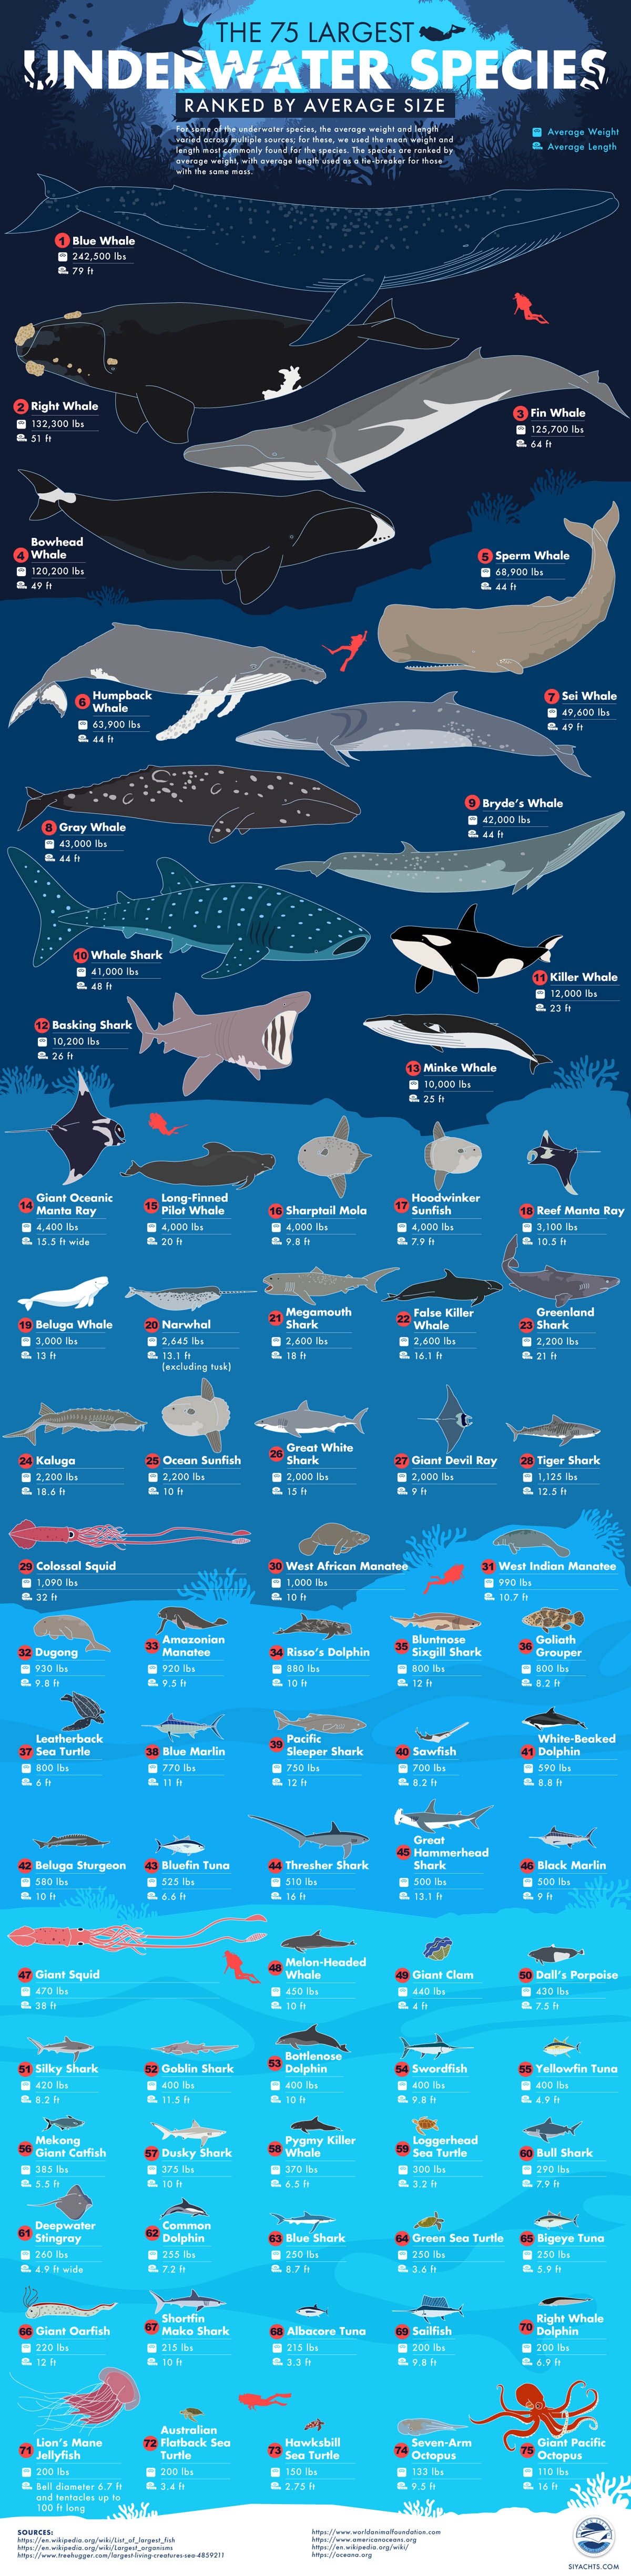 The 75 Largest Underwater Species Ranked by Average Size